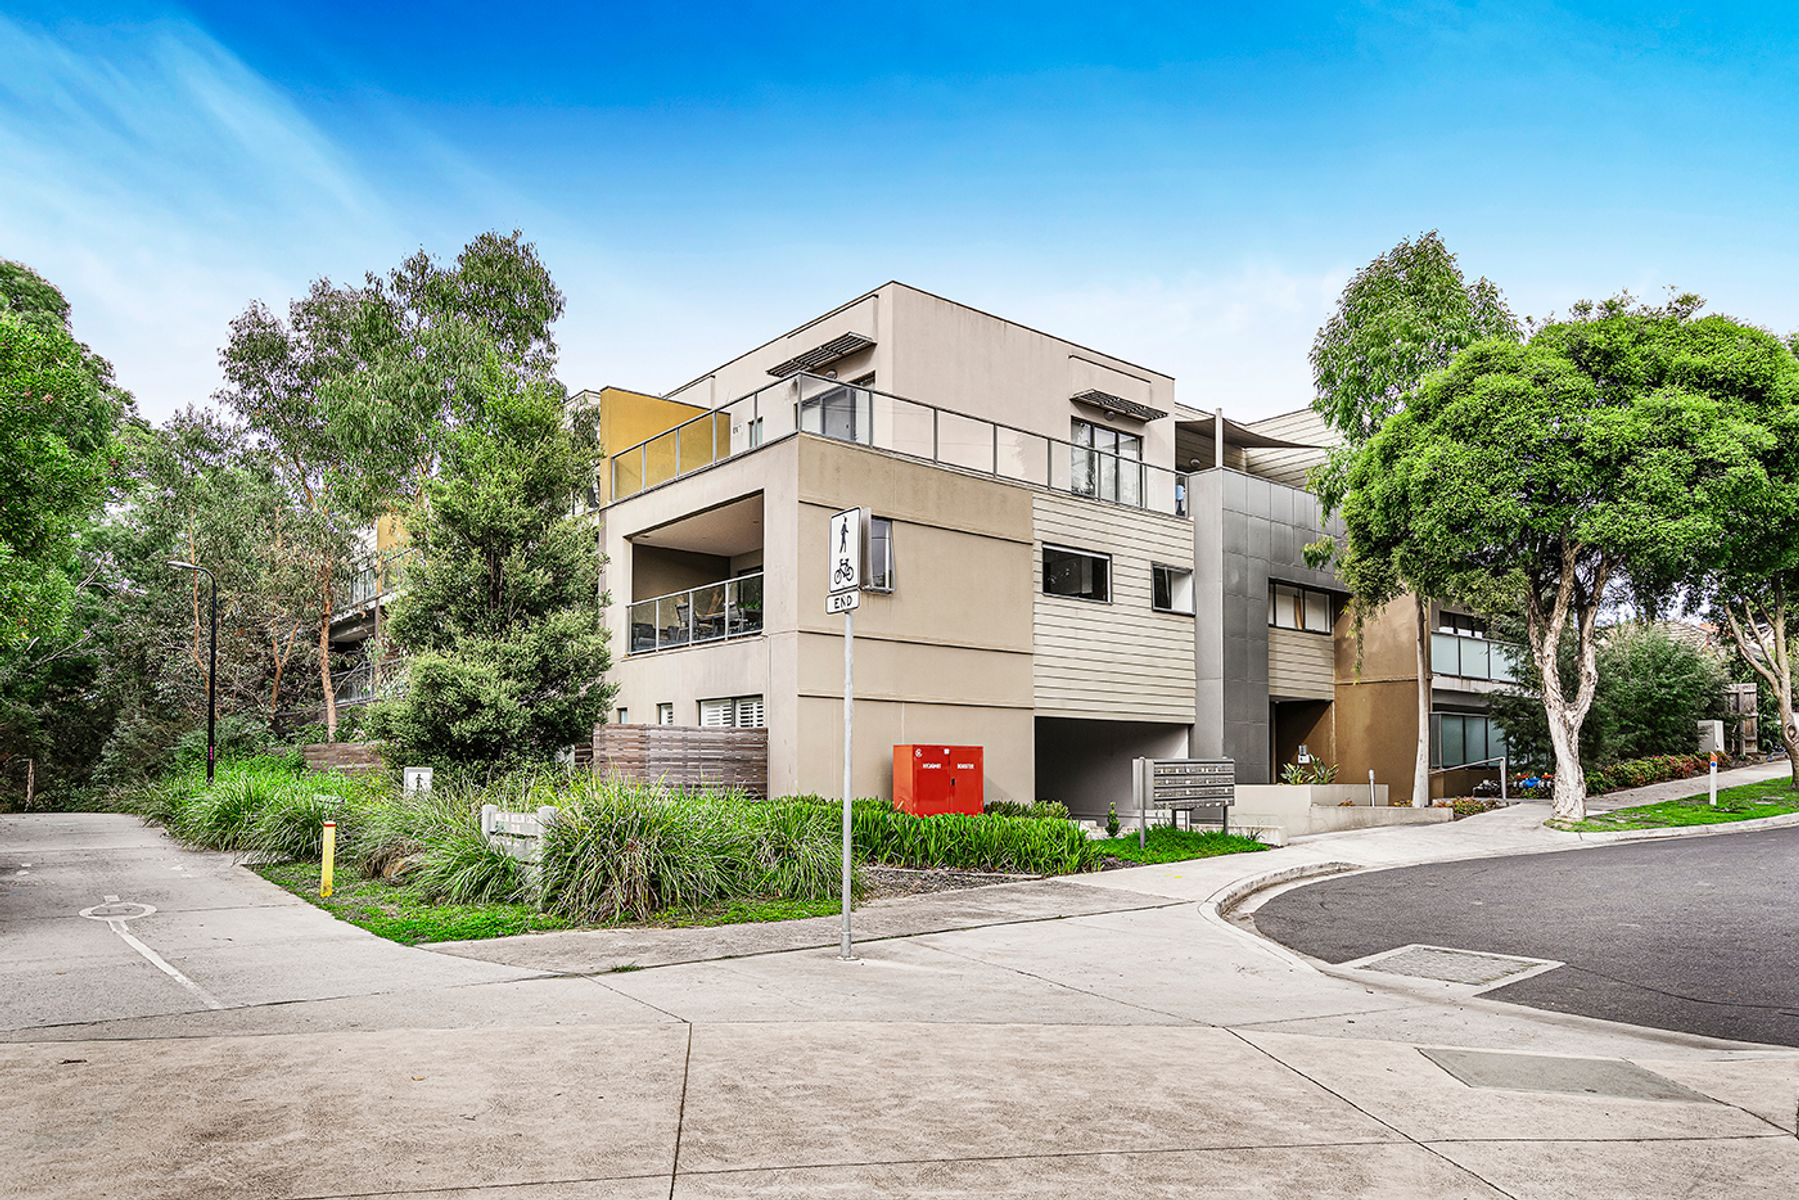 16/2-4 Acacia Ct, Ringwood, VIC 3134